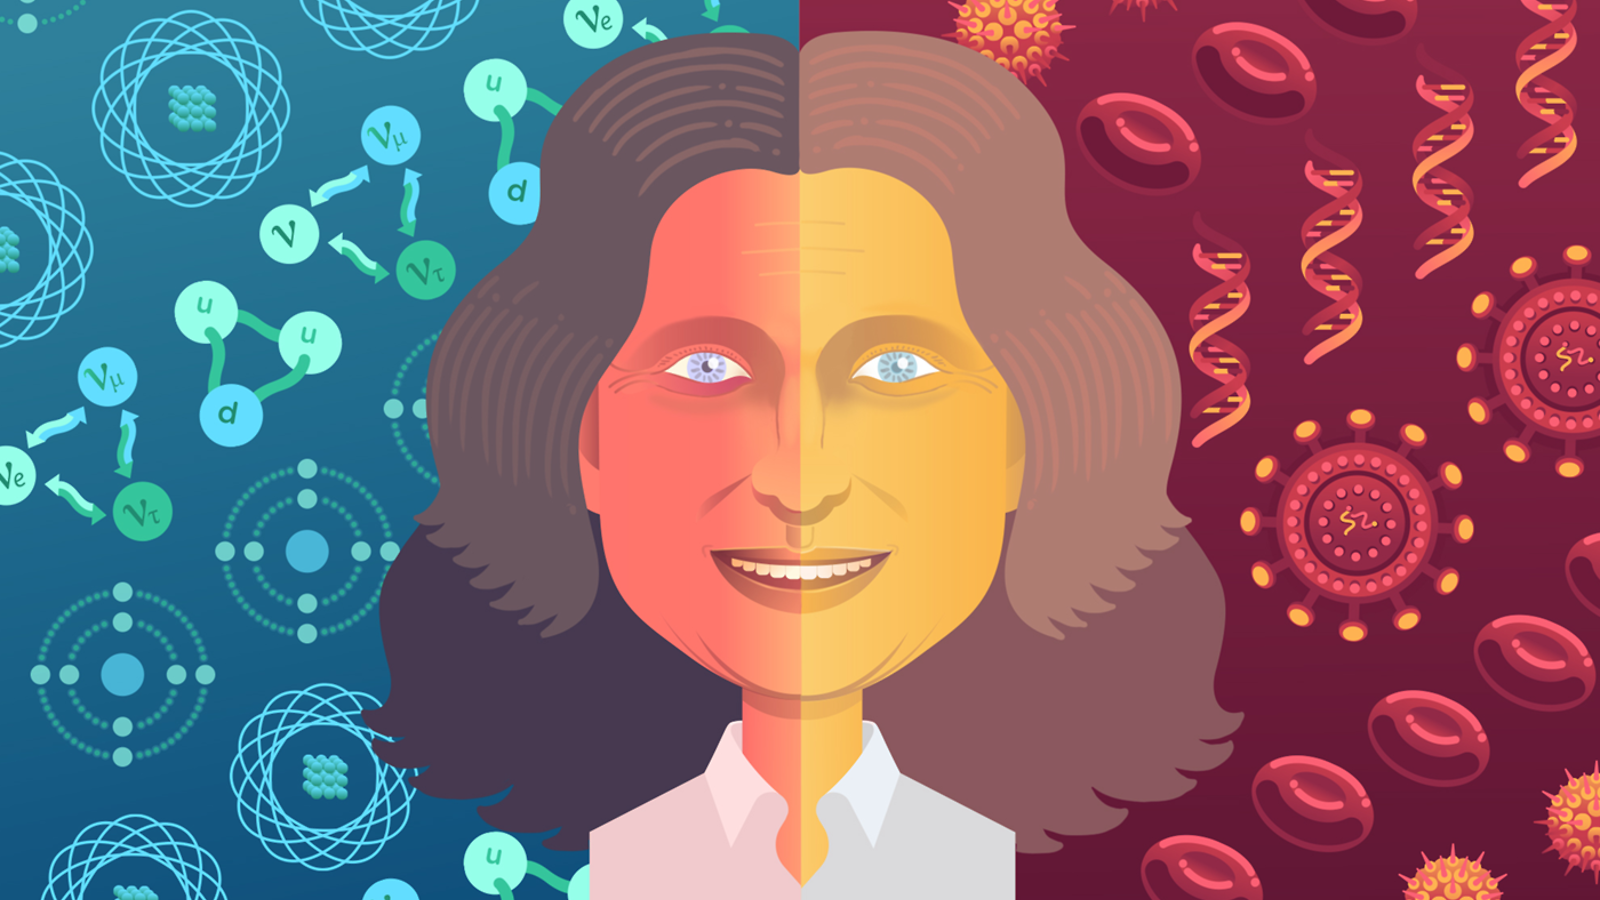 Illustration of Judy Lieberman, split screen blue and red